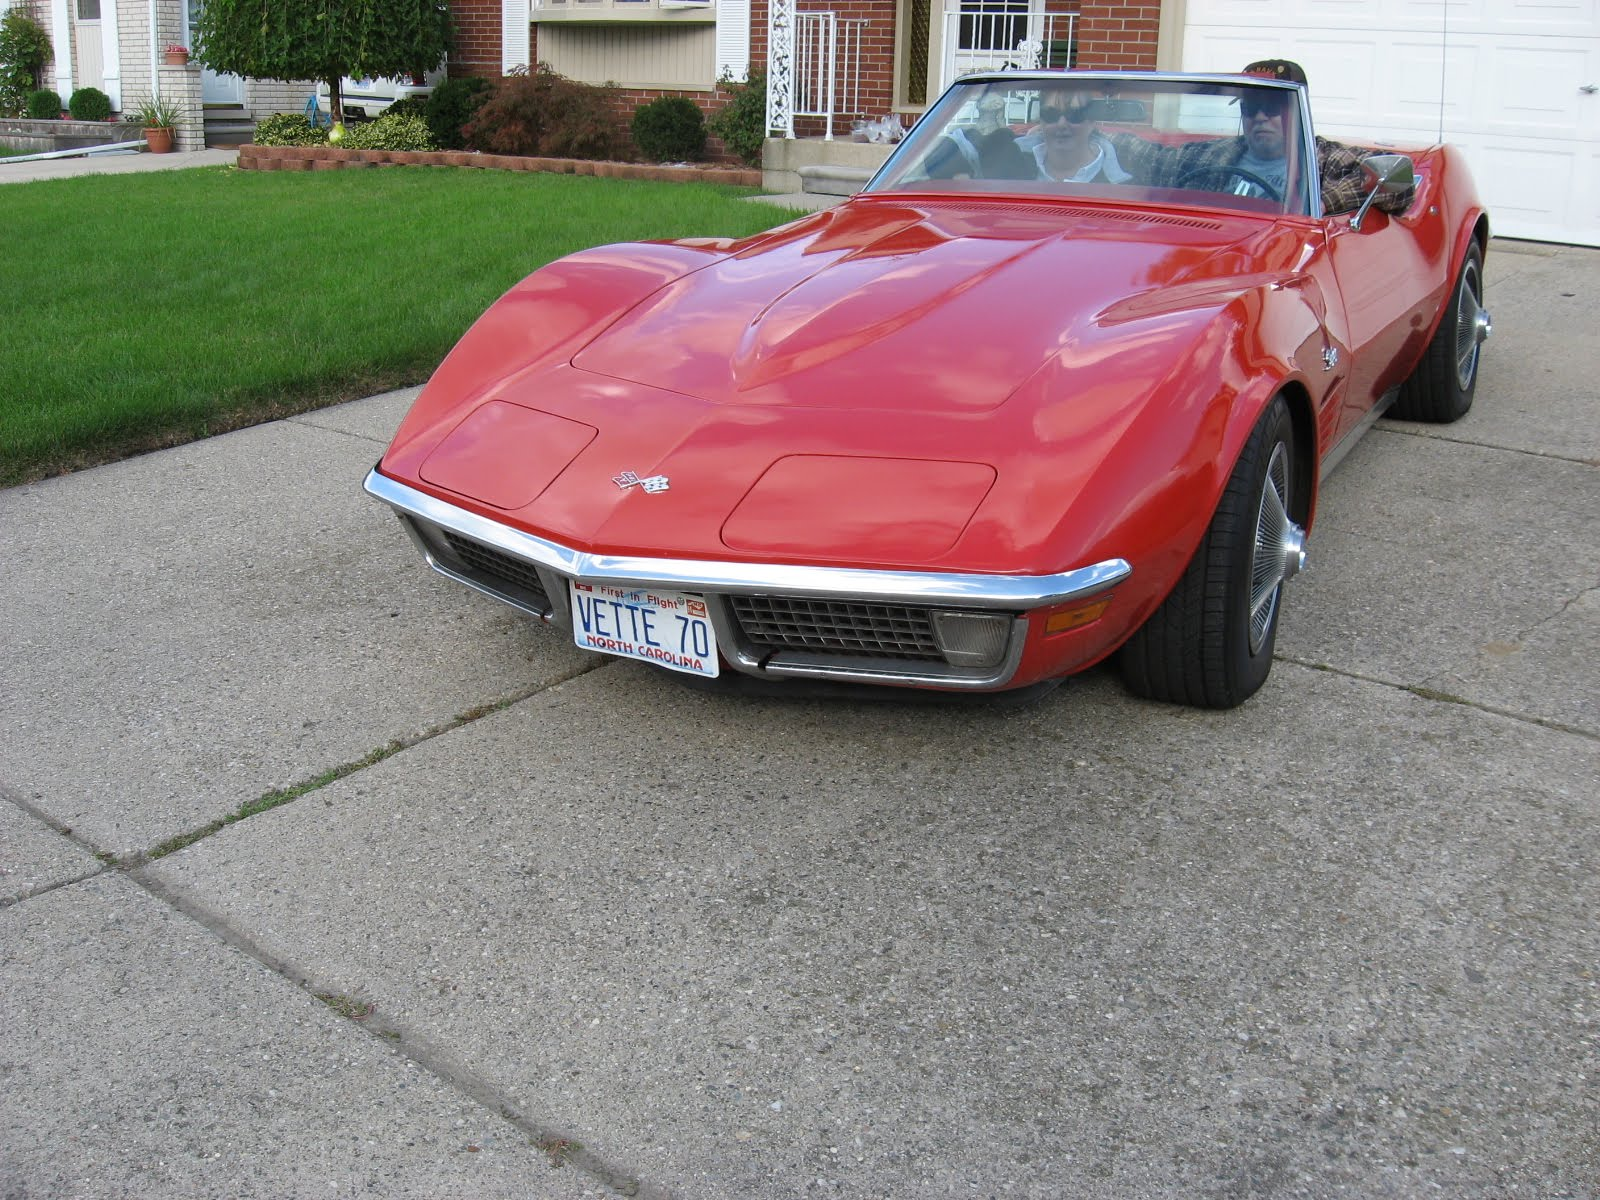 NORTH TEXAS BIKERS III: 1970 CORVETTE STINGRAY FOR SALE 10